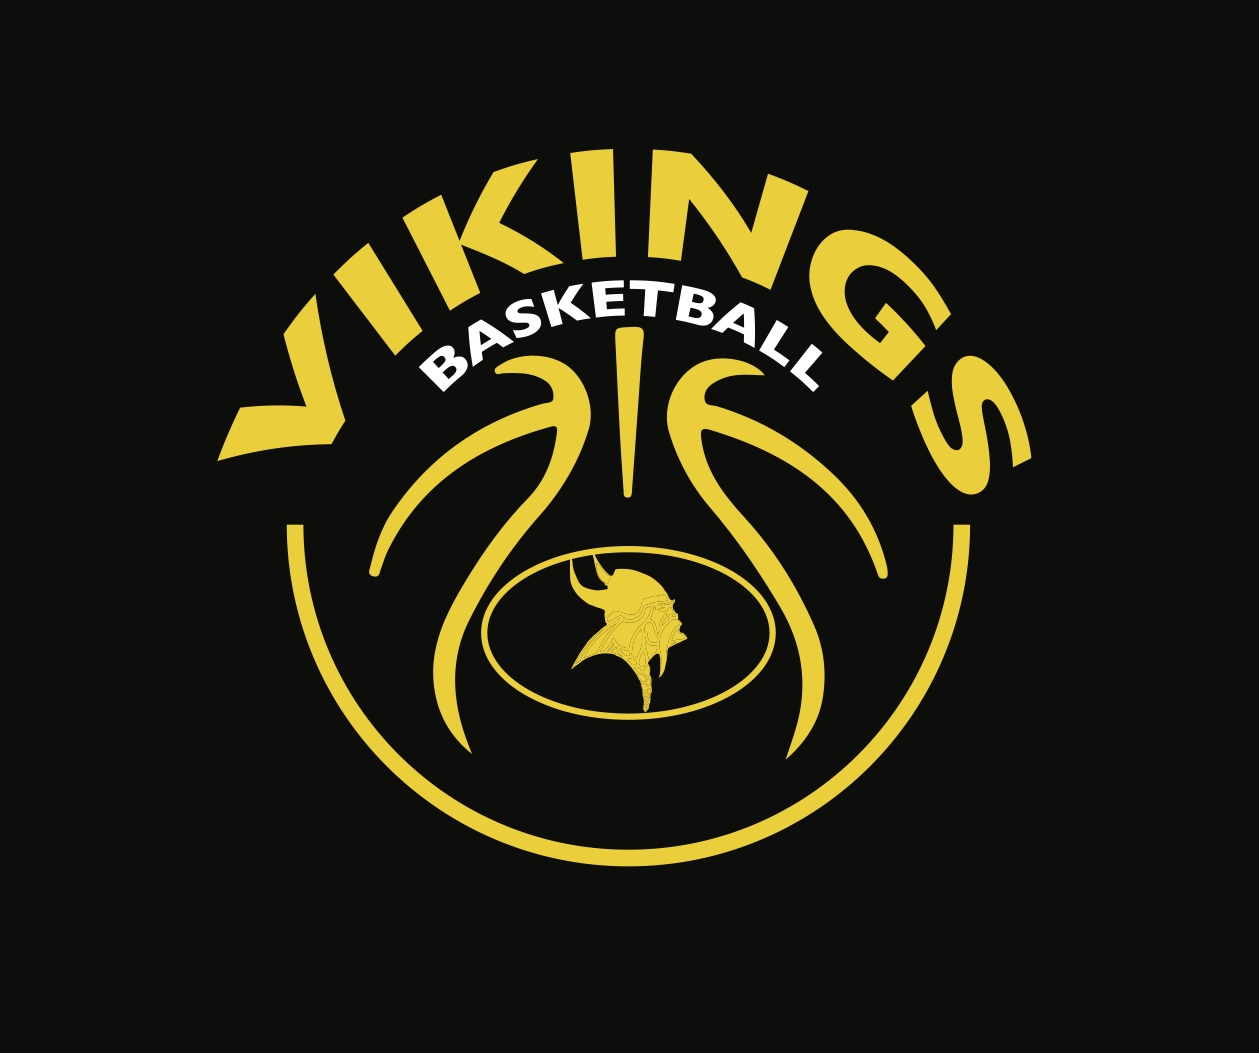 West Vikings Hoops